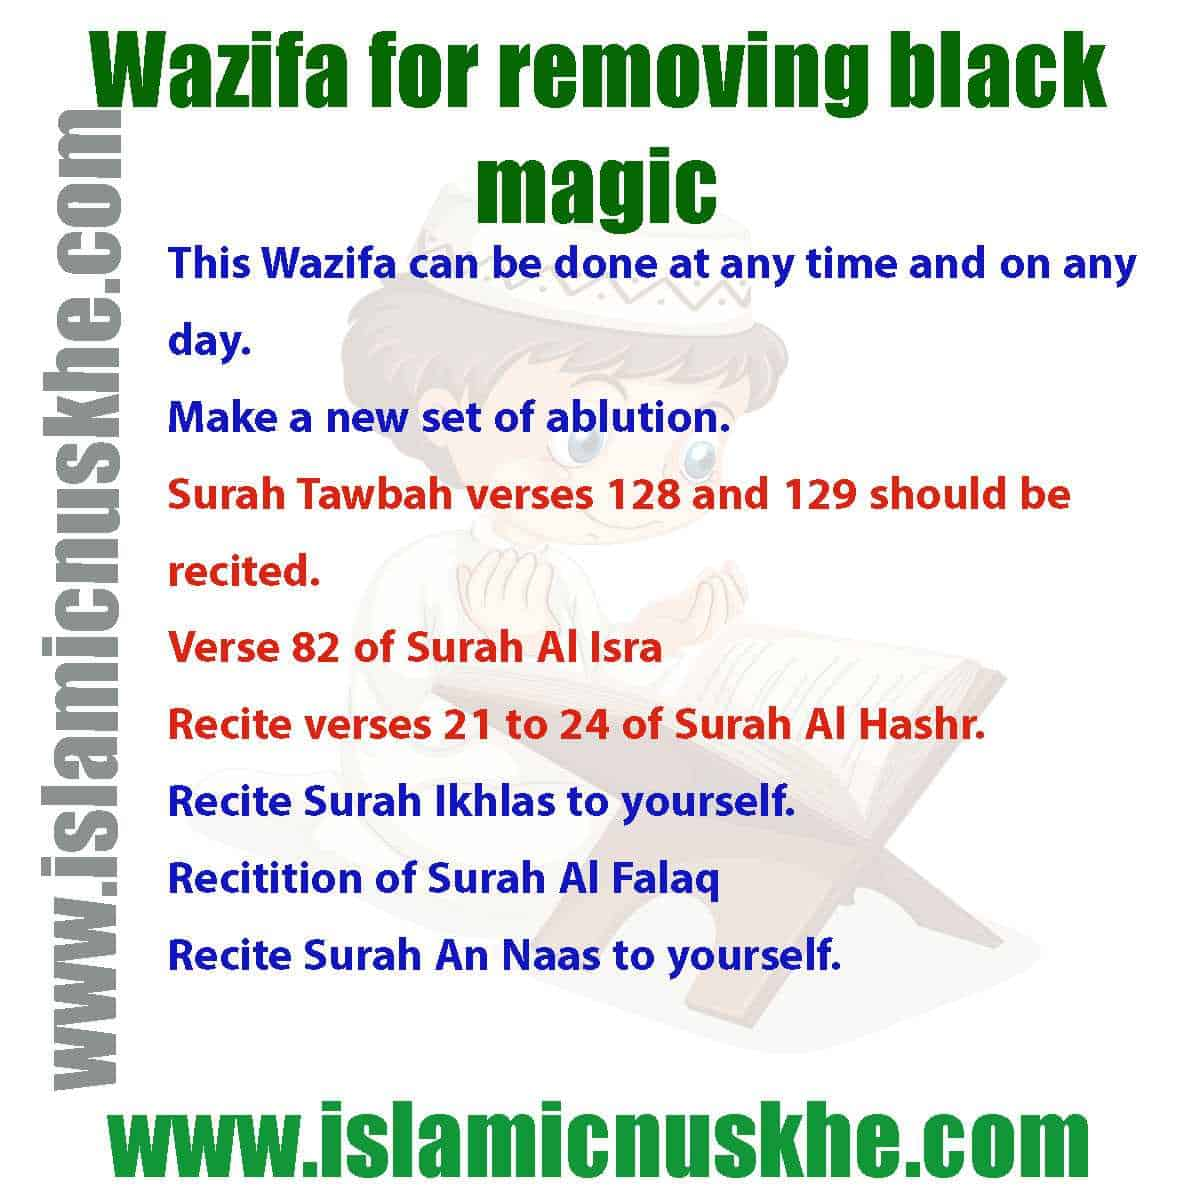 Here is Islamic Wazifa for removing black magic from house Step by Step